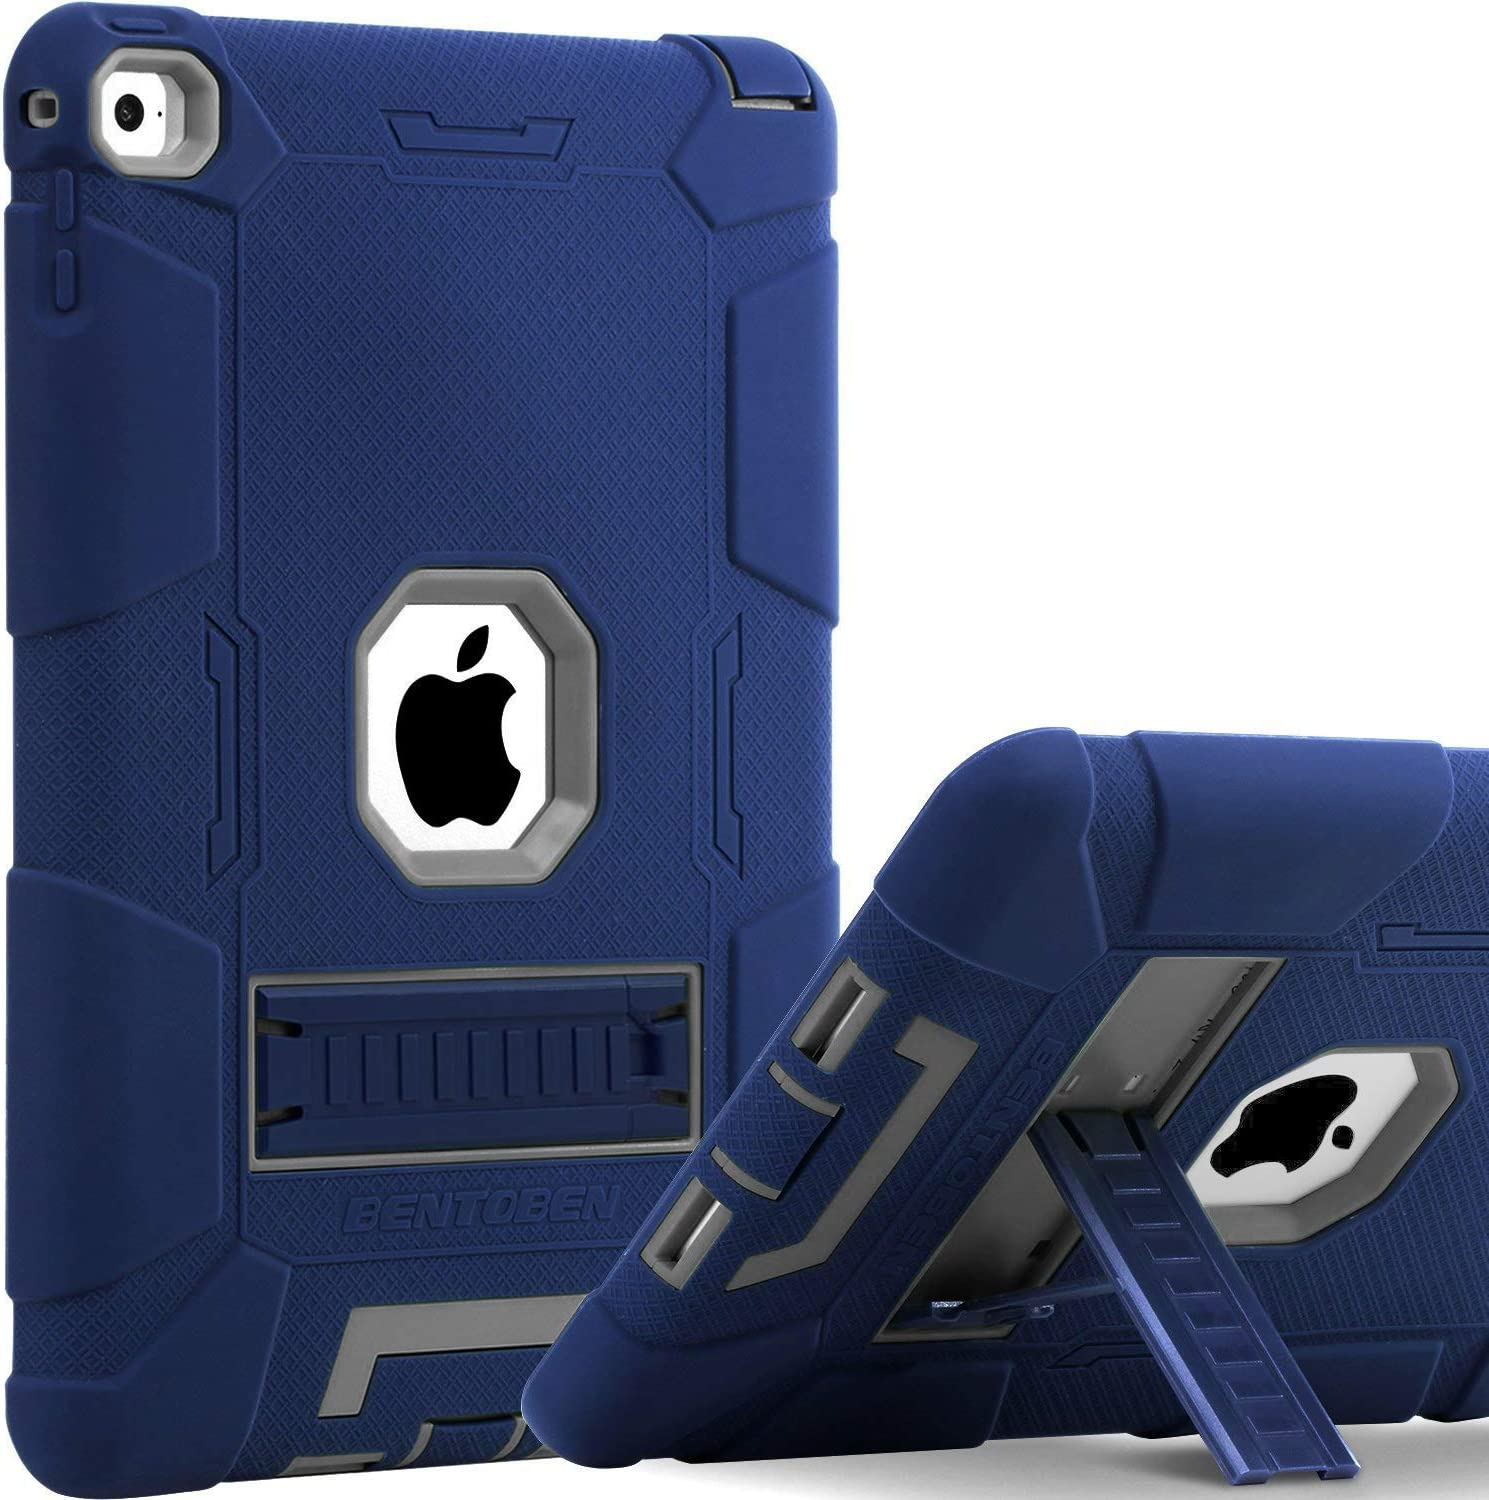 BENTOBEN Case for iPad Air 2, [Hybrid Shockproof Case] with Kickstand Rugged Triple-Layer Shock Resistant Drop Proof Protective Case Cover for iPad Air 2 (A1566 A1567) 2014 Released, Navy Blue/Gray